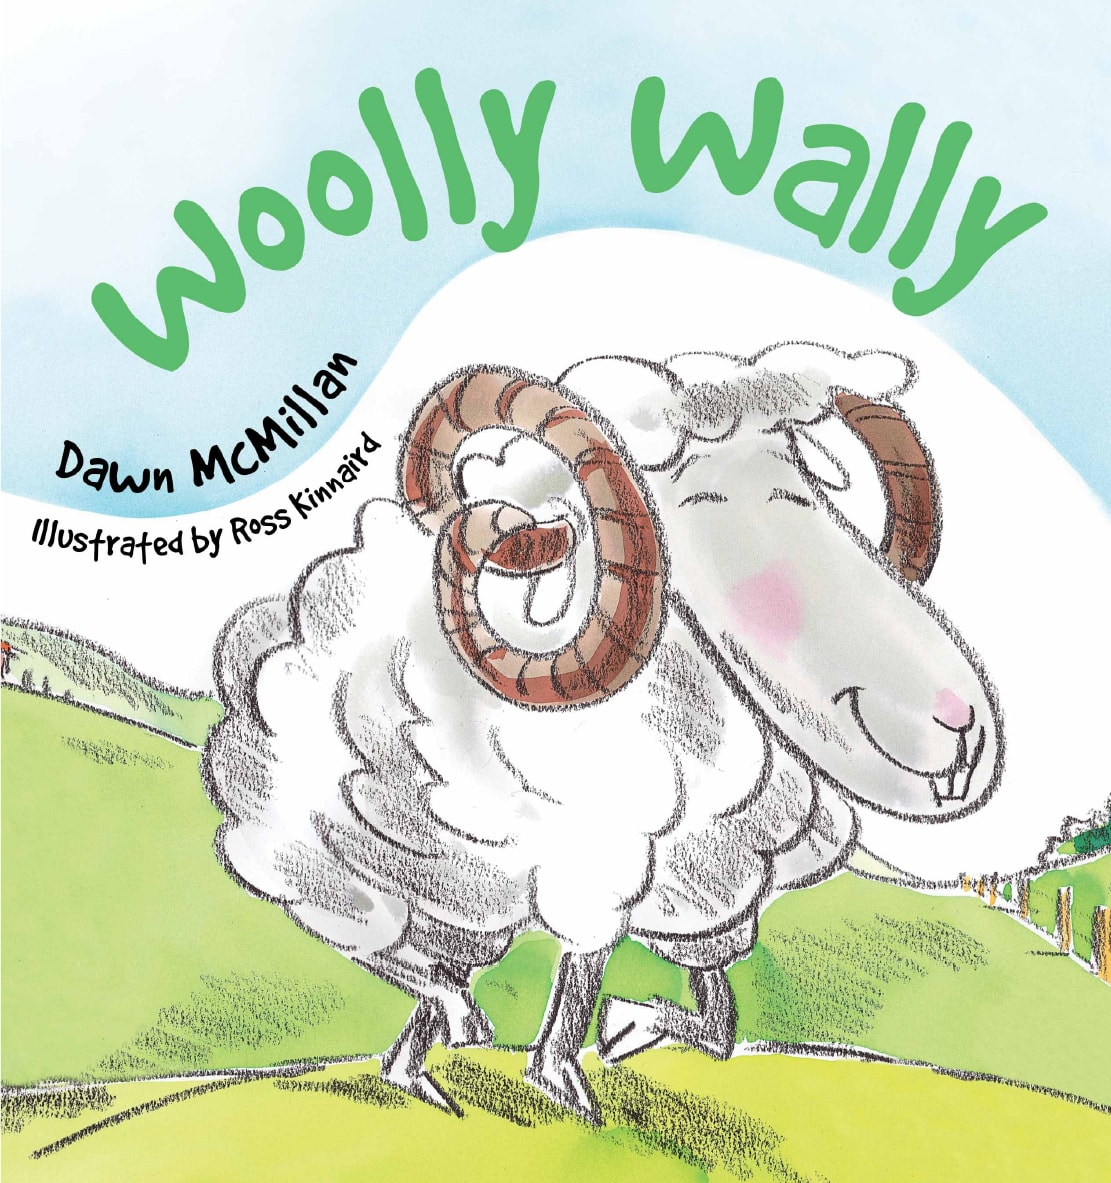 Woollywally Min